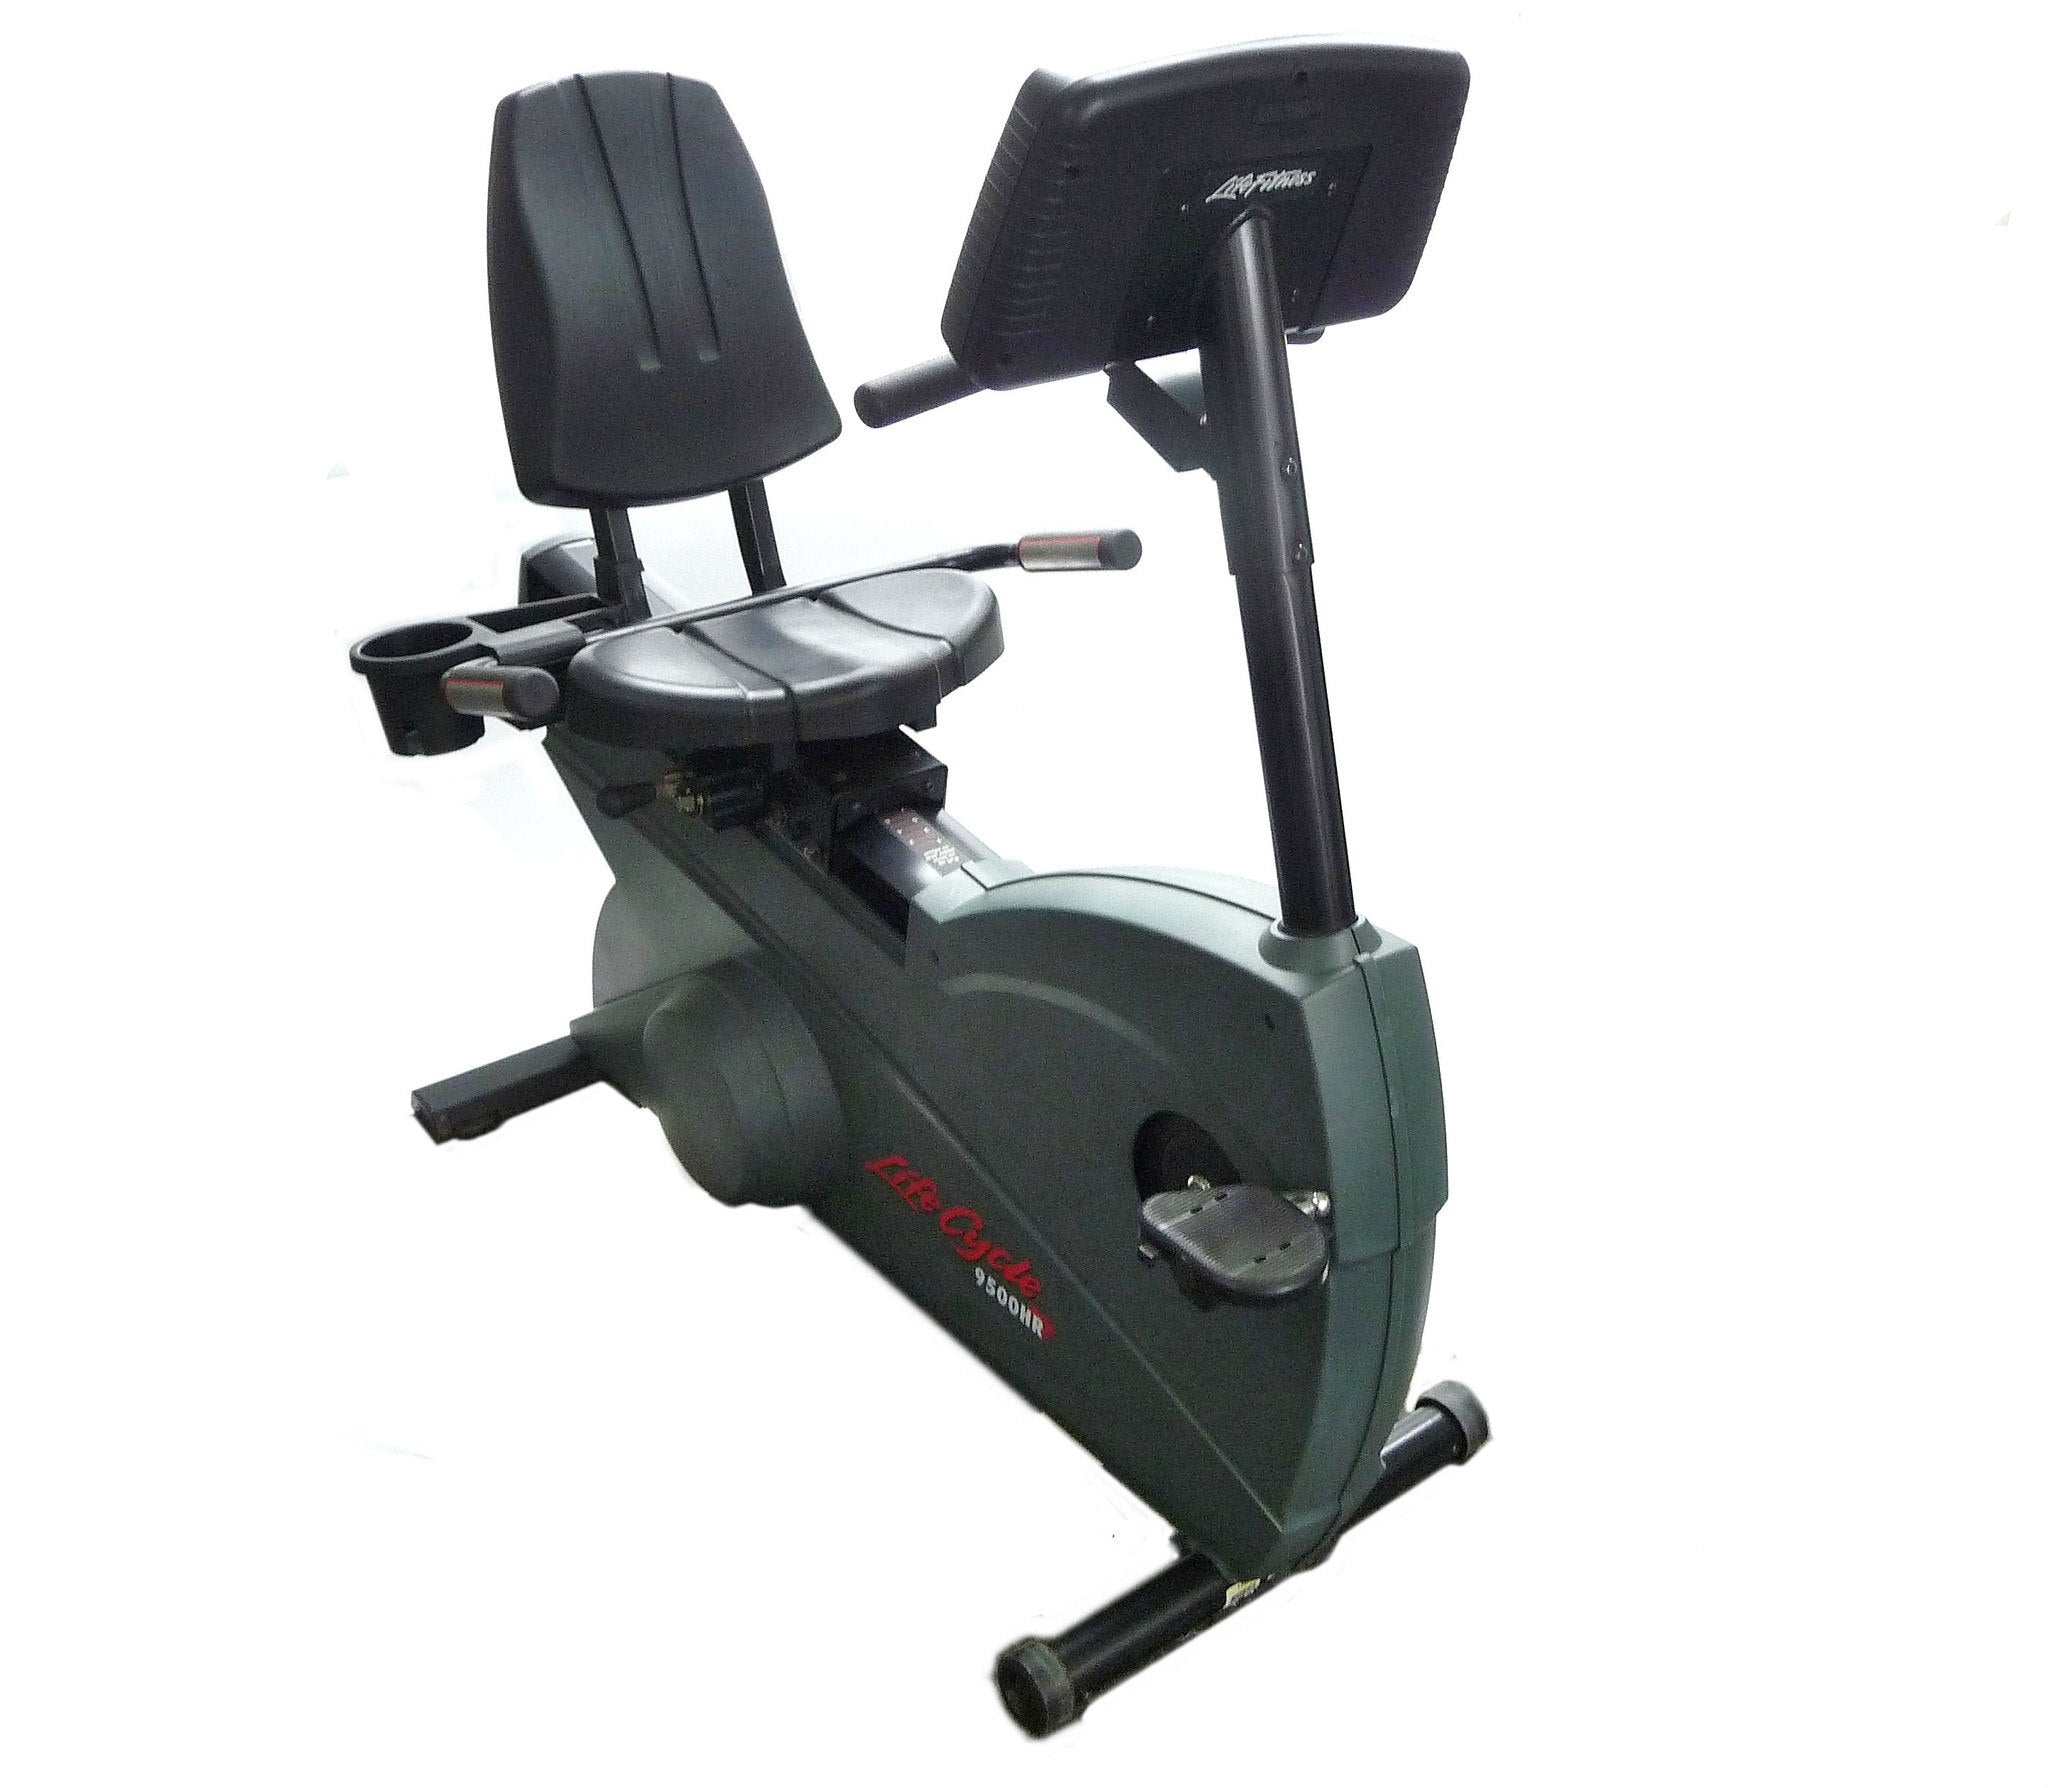 Life Fitness 9500HR Recumbent Bike - Dove Tail - Fitness Equipment Broker | Voted America's #1 Trusted Source